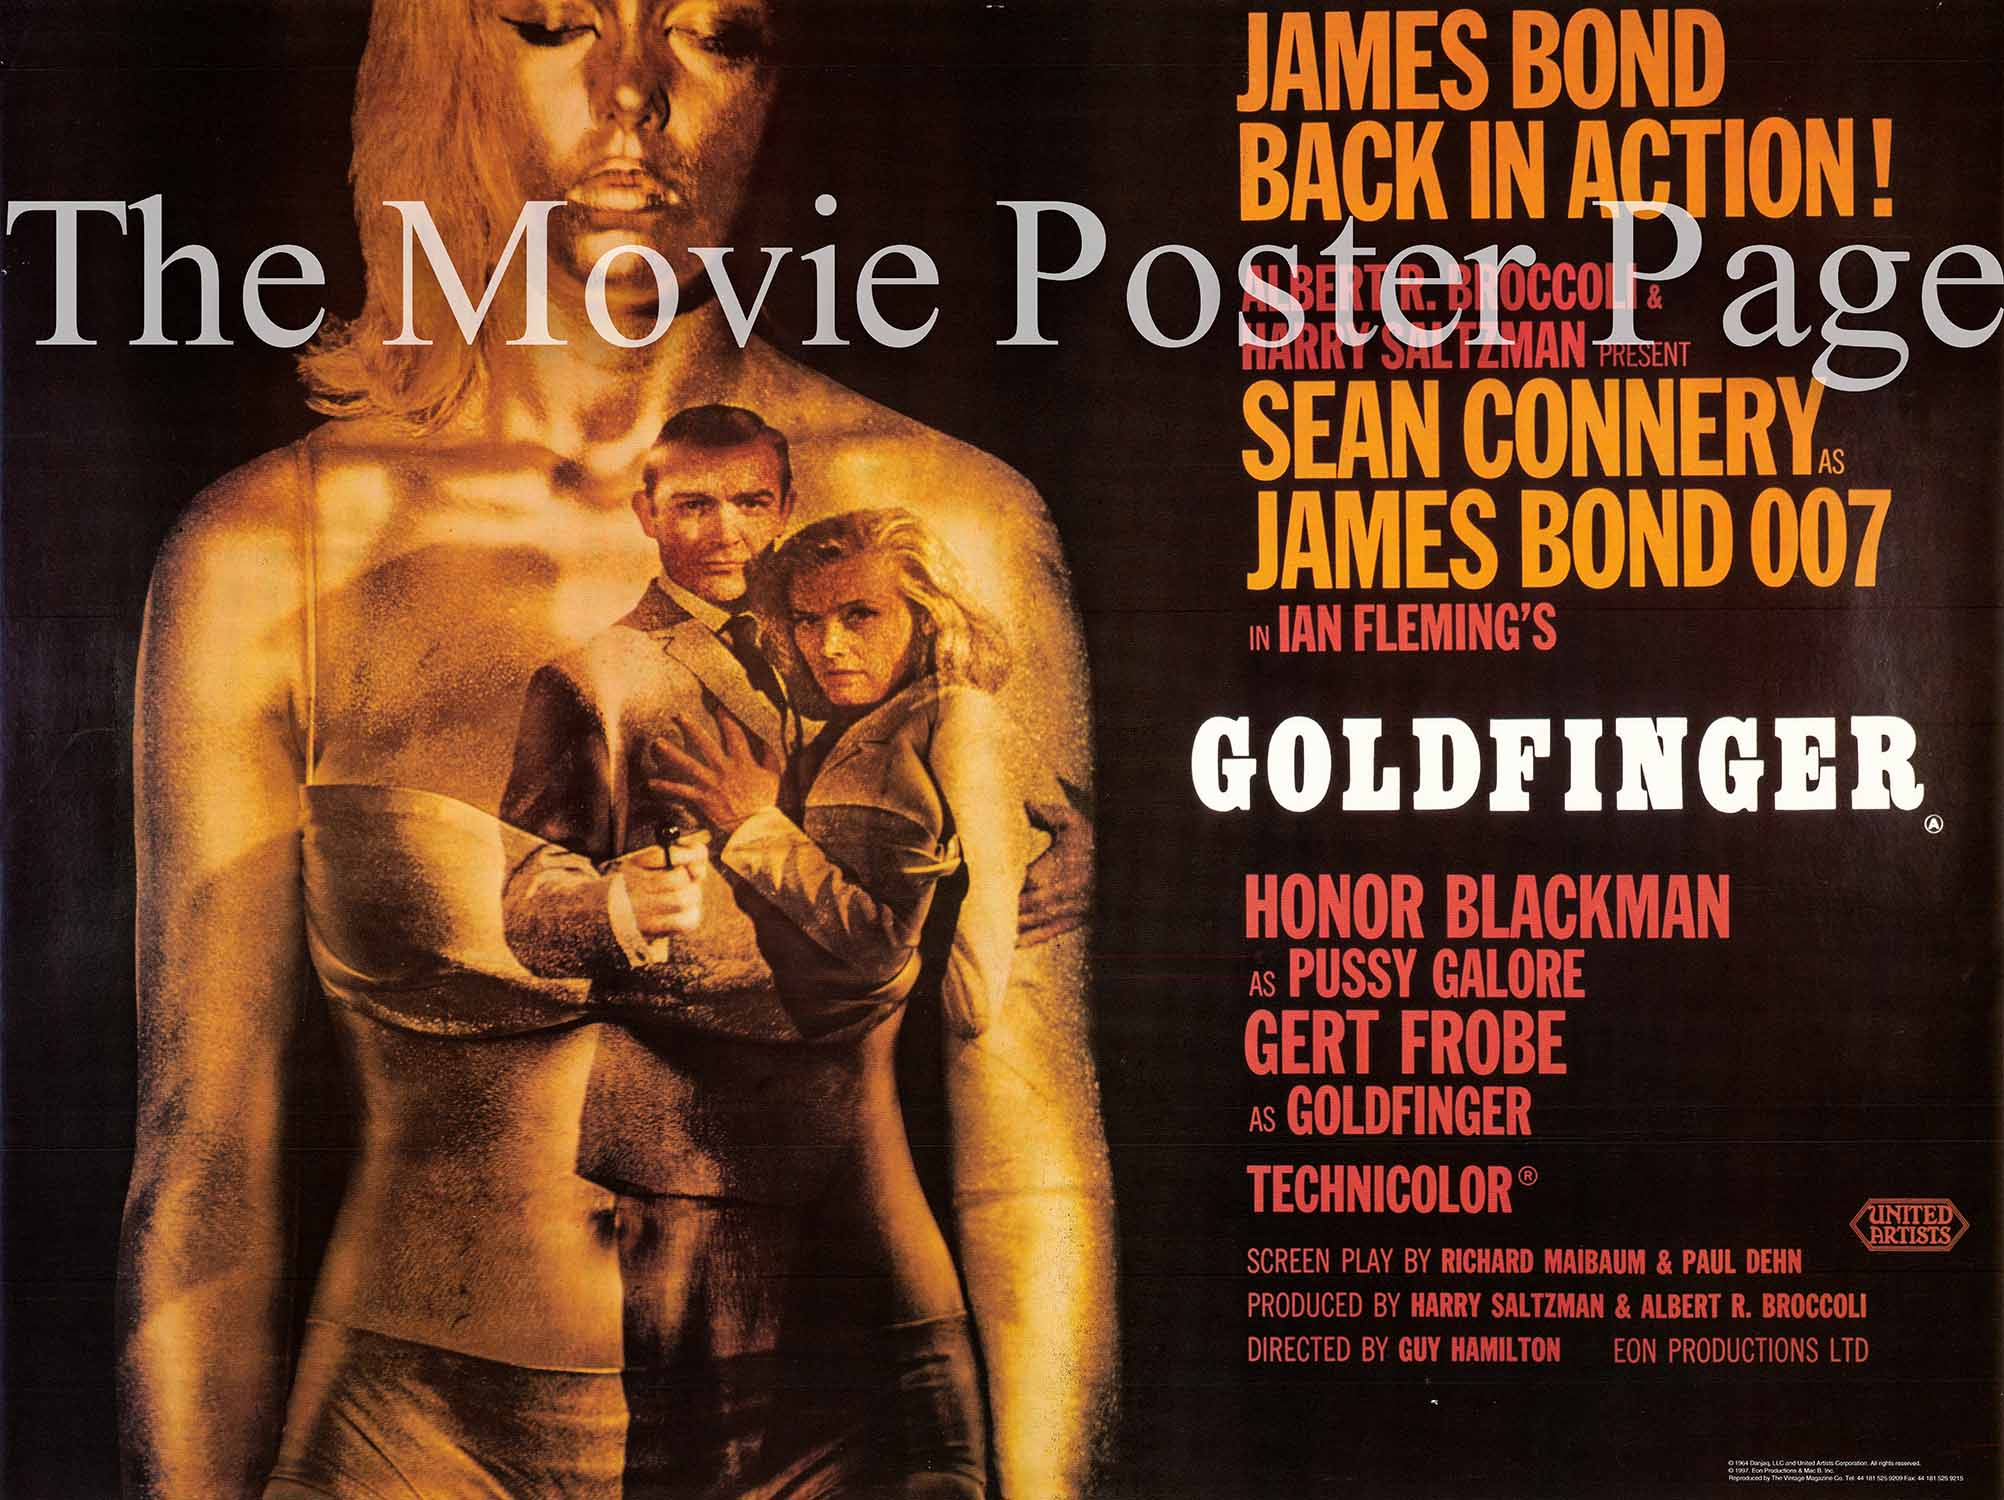 Pictured is a reprint of a UK quad poster for the 1964 Guy Hamilton film Goldginger starring Sean Connery as James Bond.